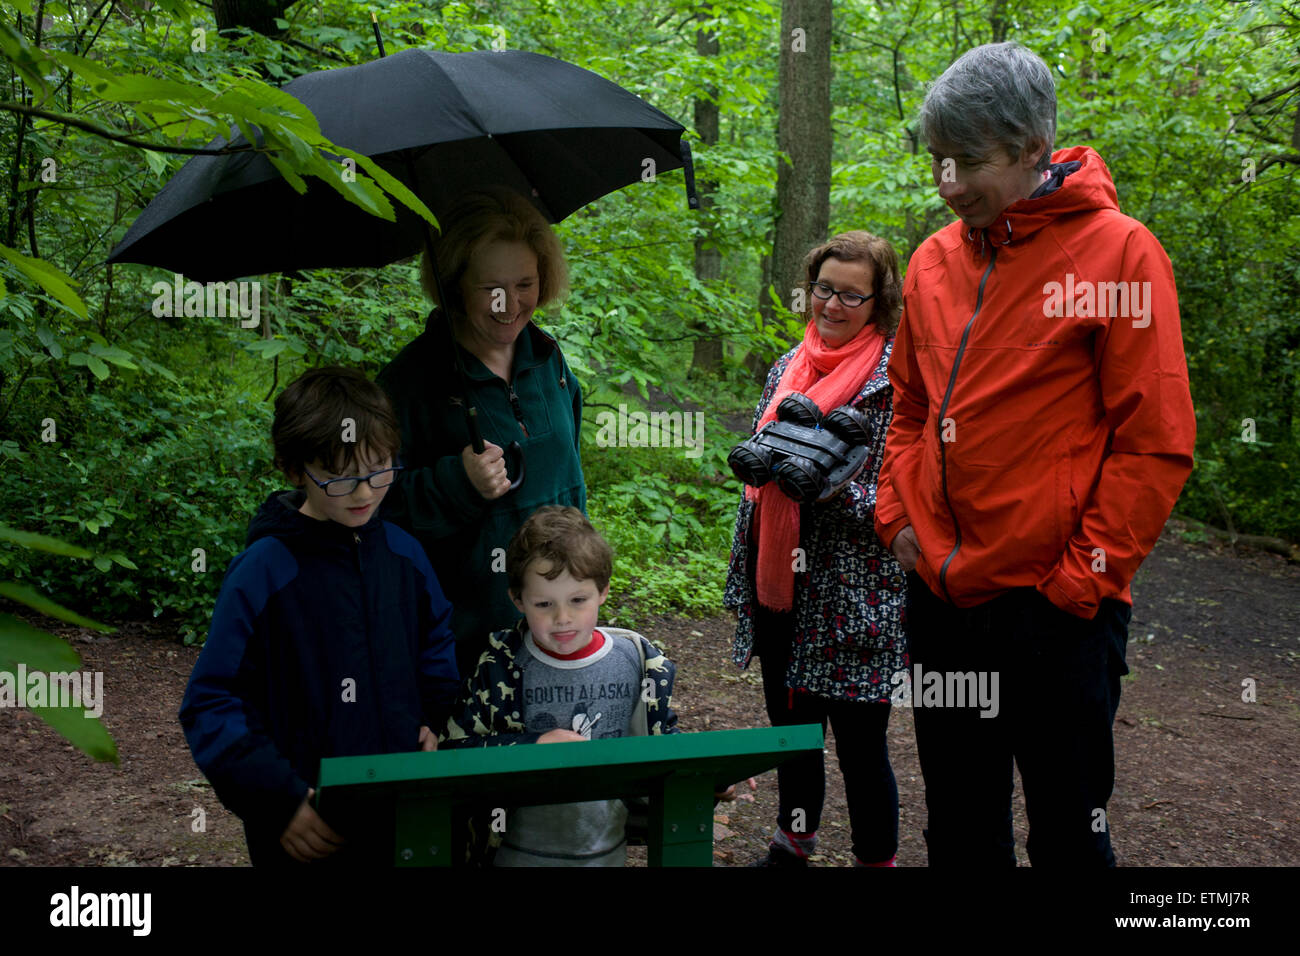 A family read information from a board in woods south of Sheffield, England UK. - Stock Image